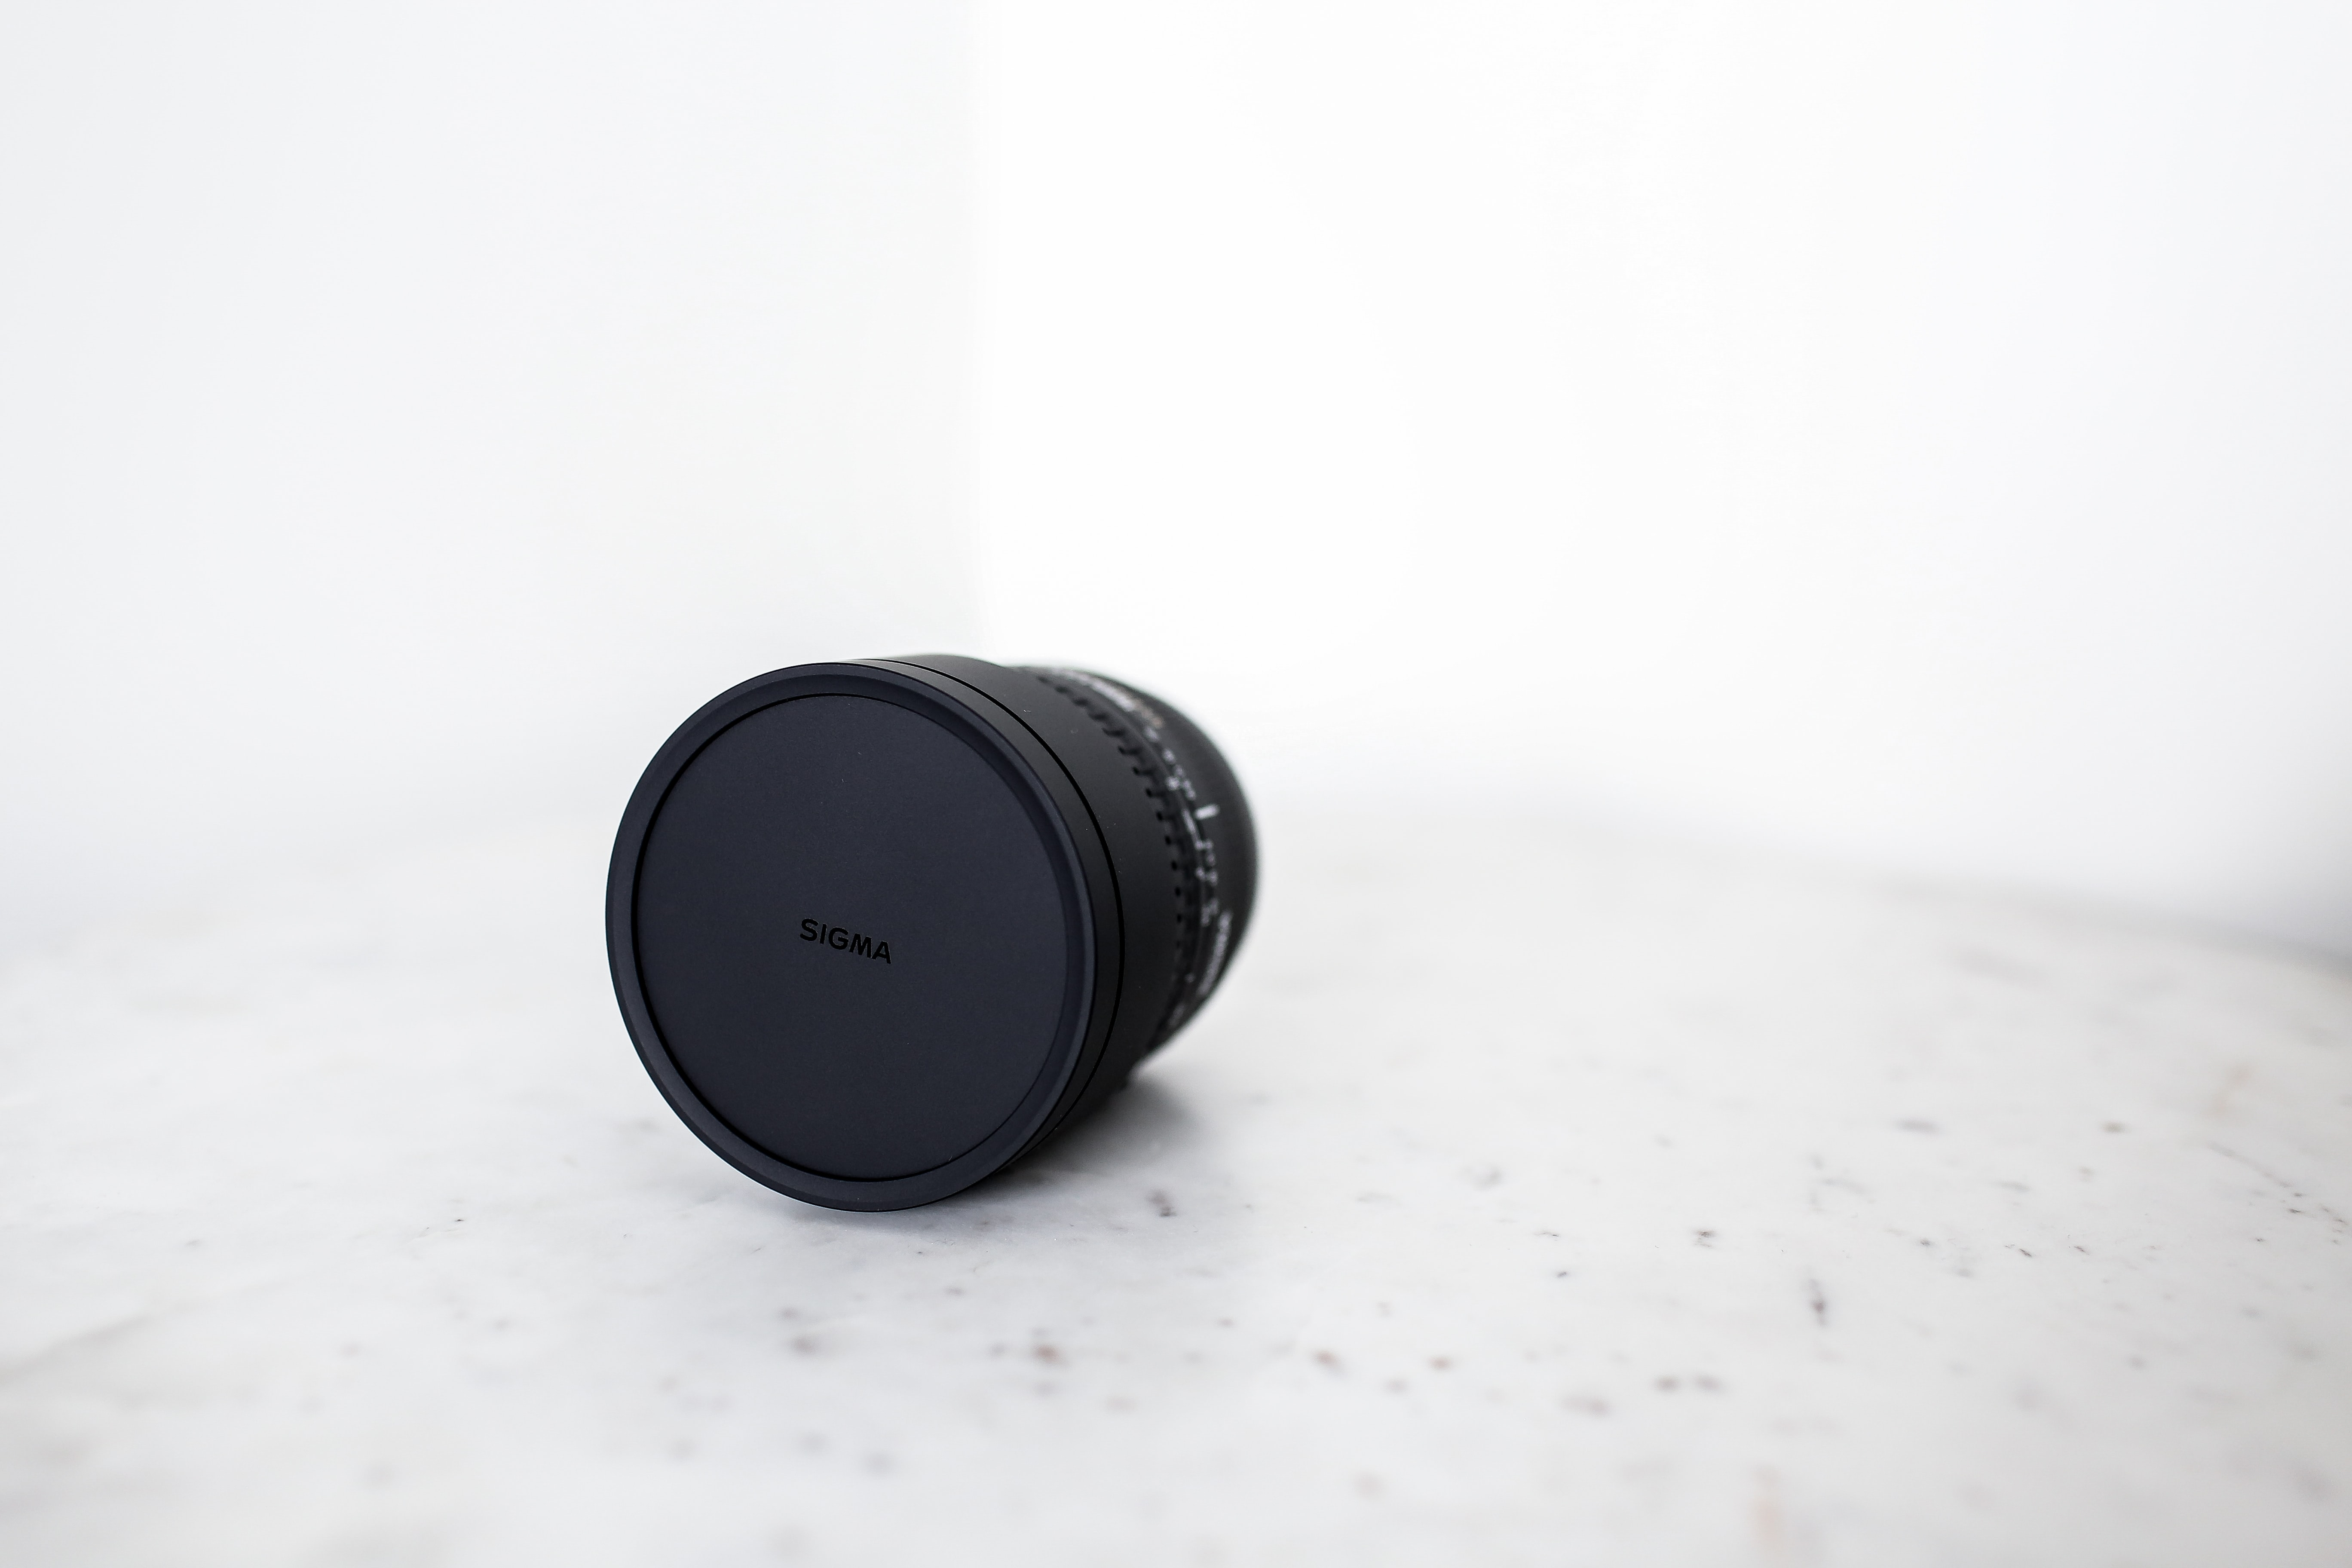 A Sigma lens with its cover on a white marble surface in front of a white wall